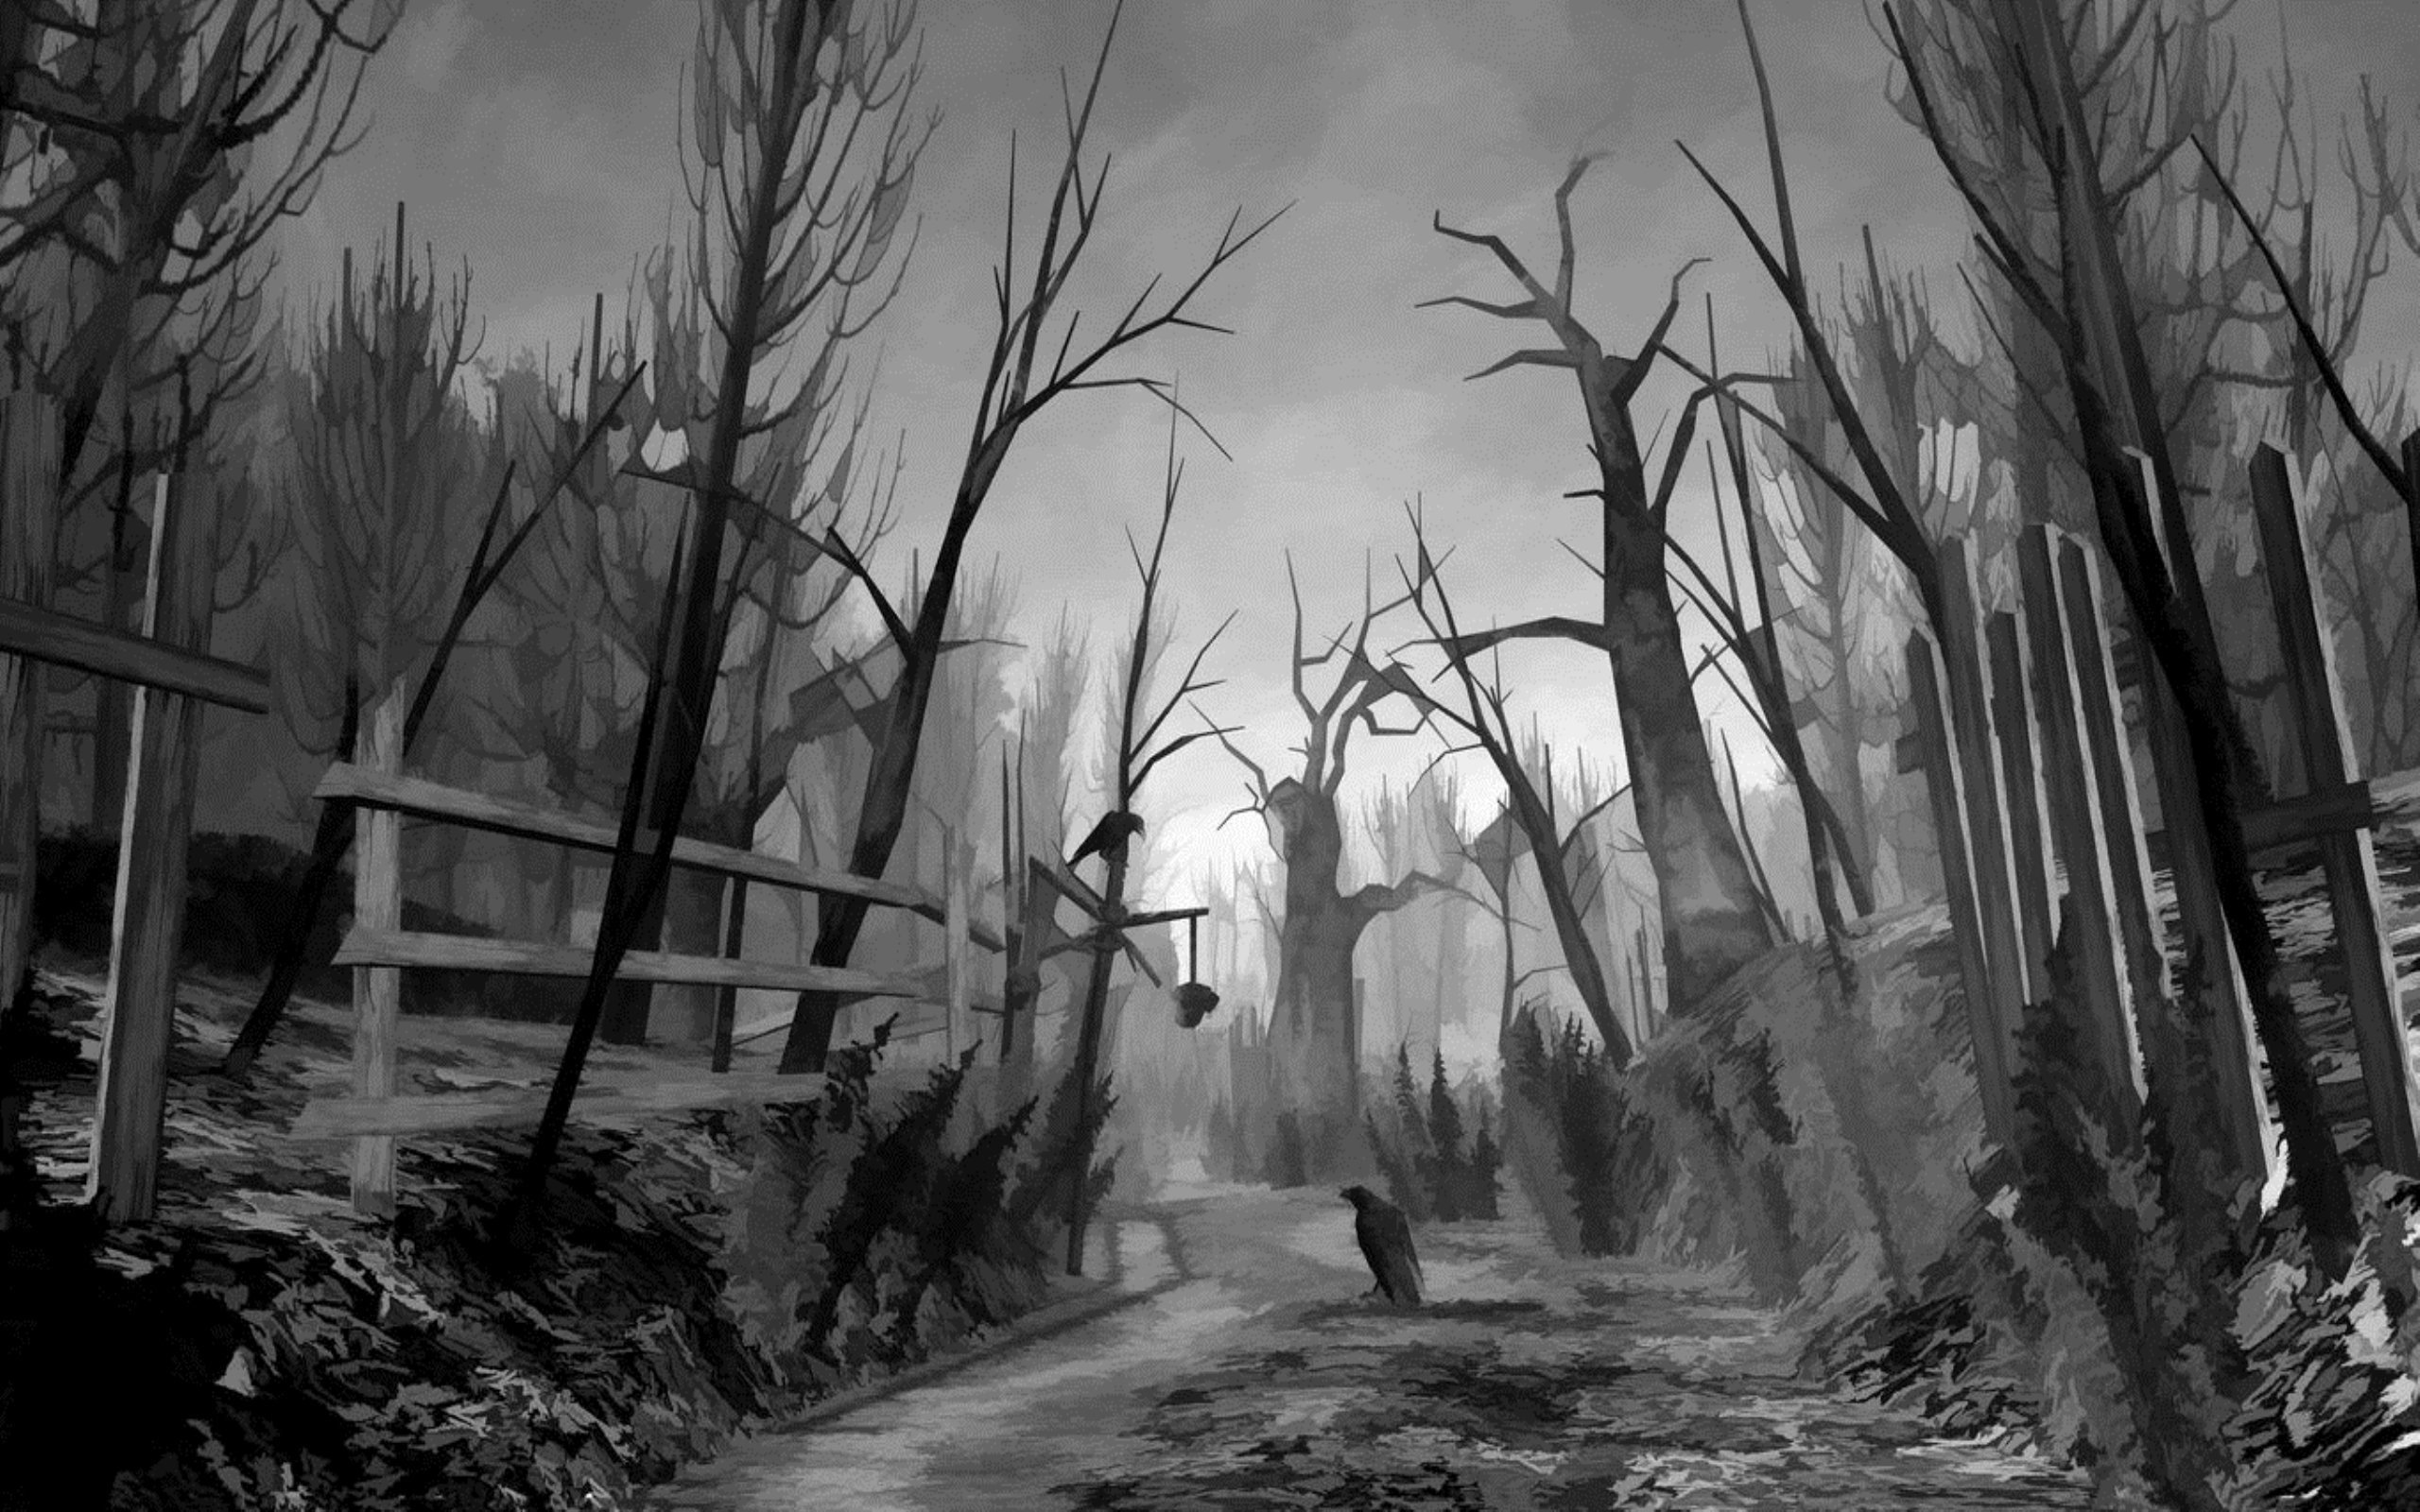 Dark scary forest wallpaper 64 images - Dark horror creepy wallpapers ...